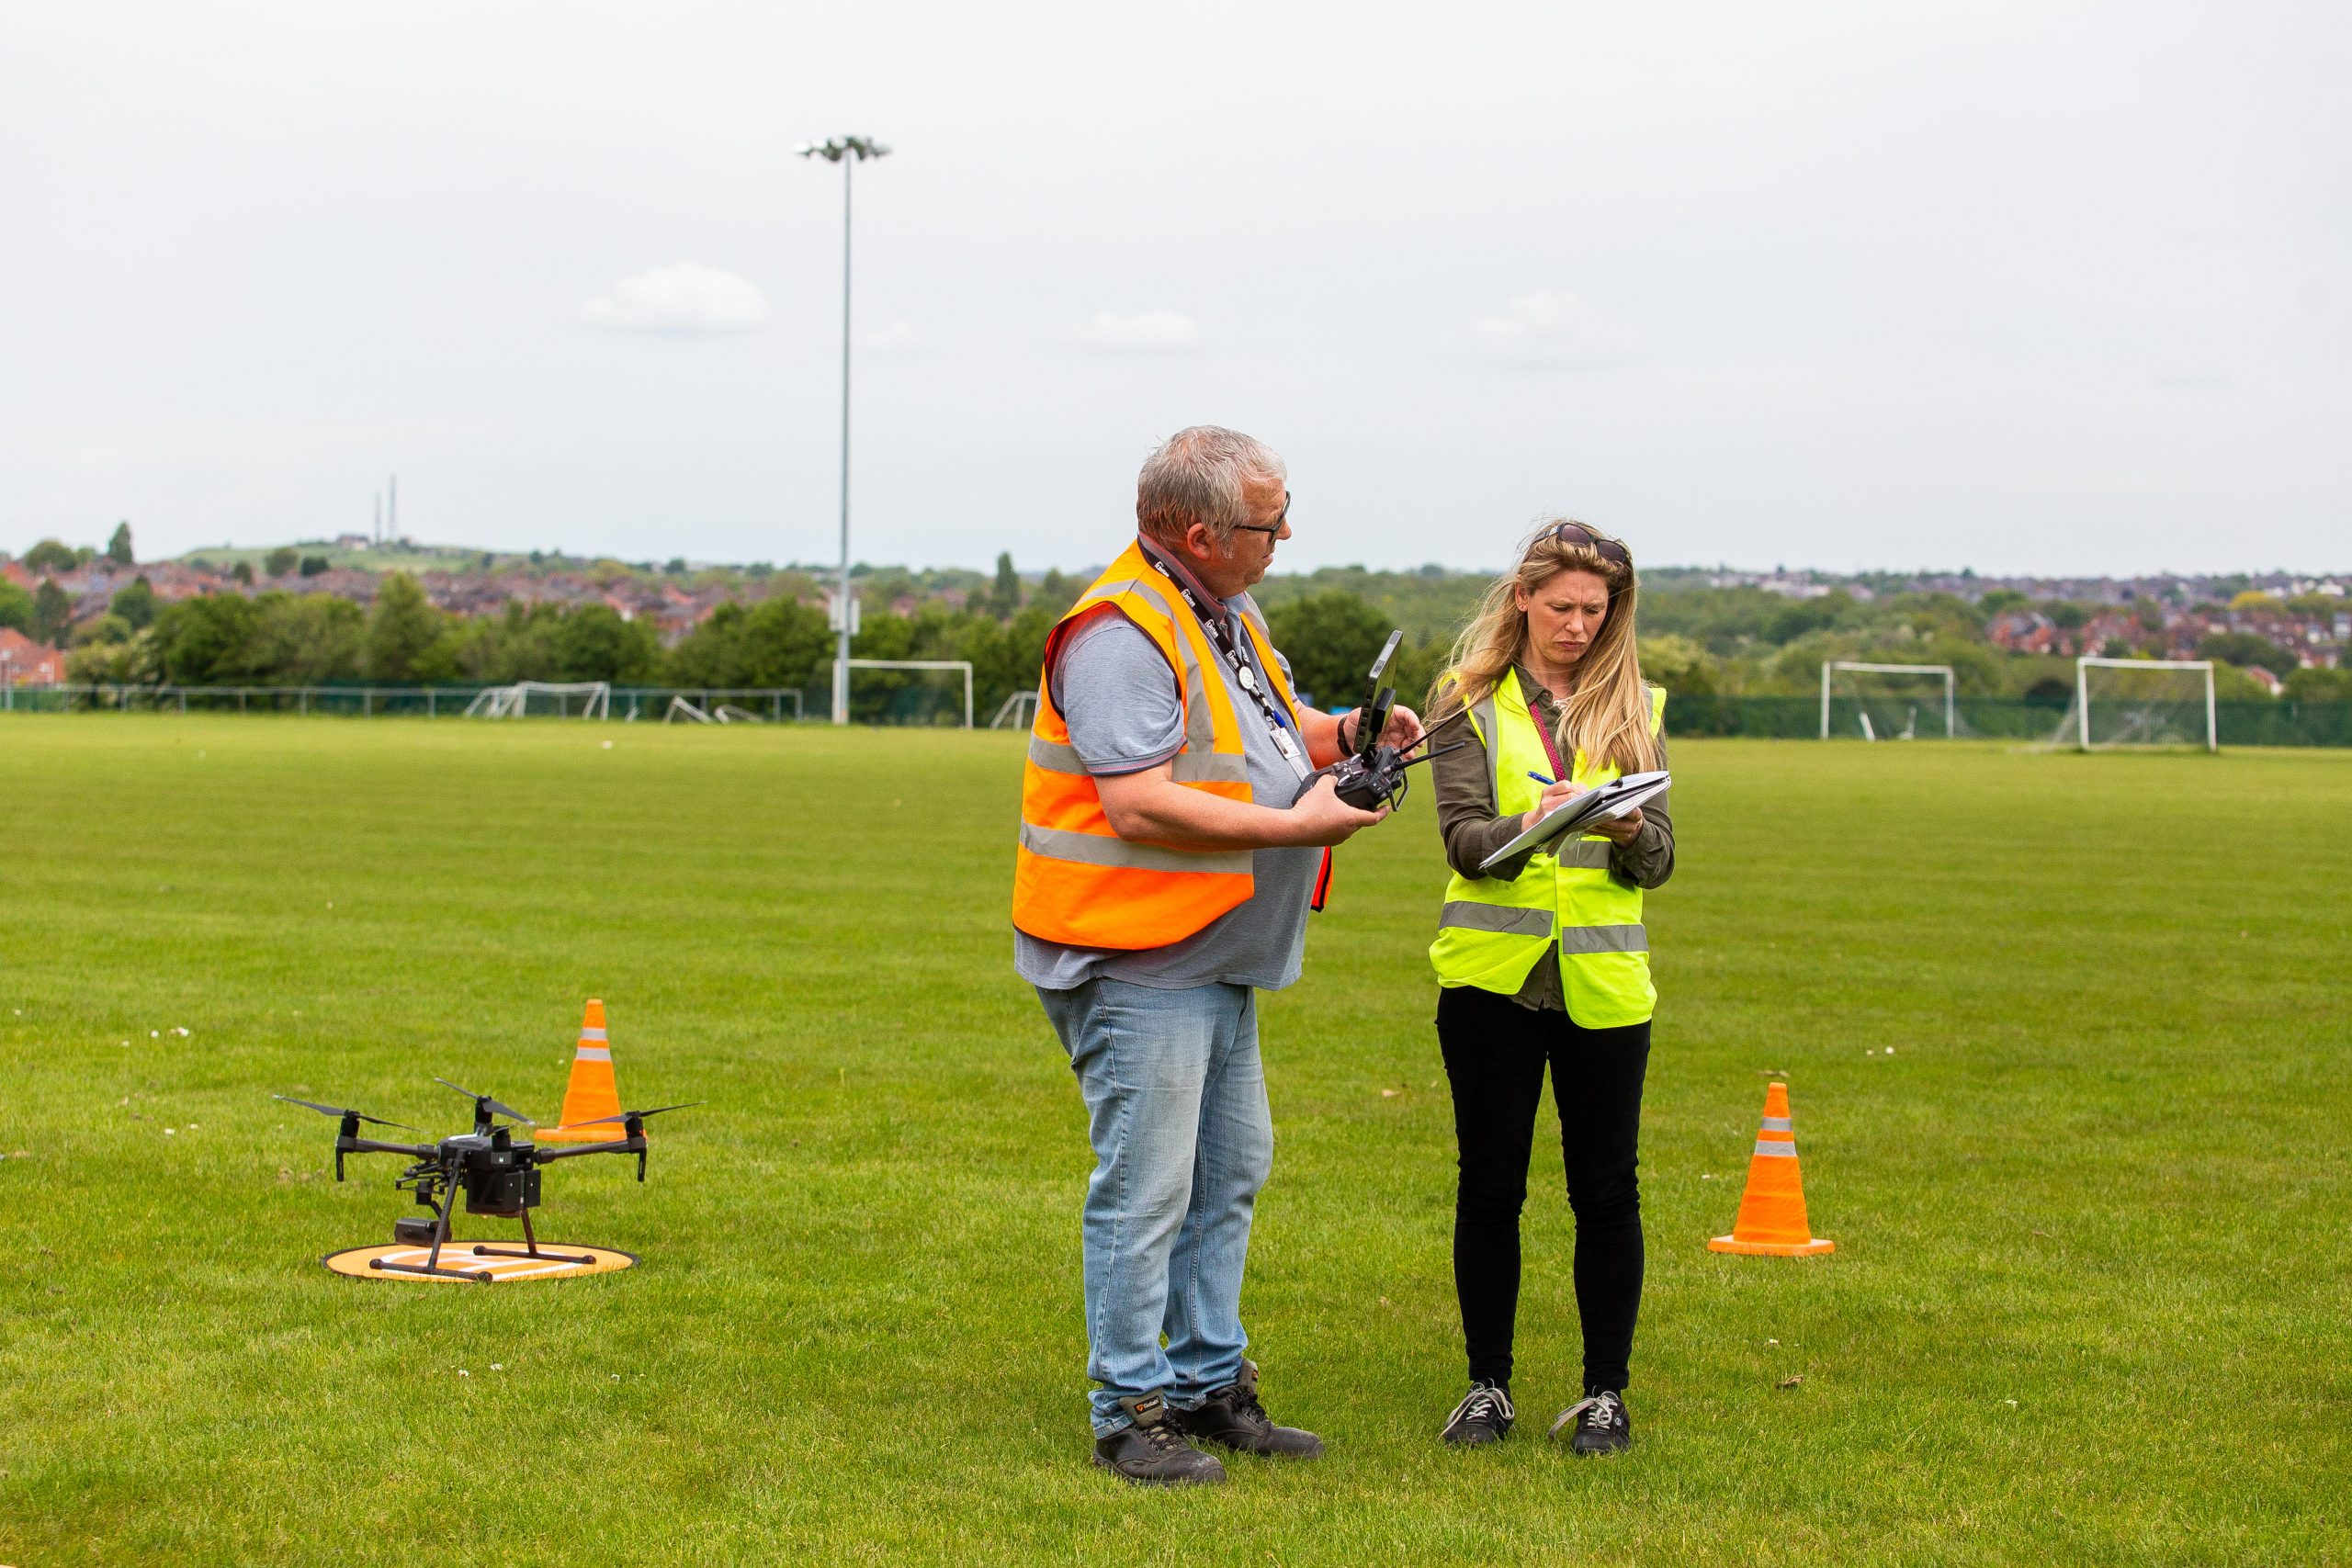 Unitas Stoke-on-Trent Fly High With New Drone Pilots